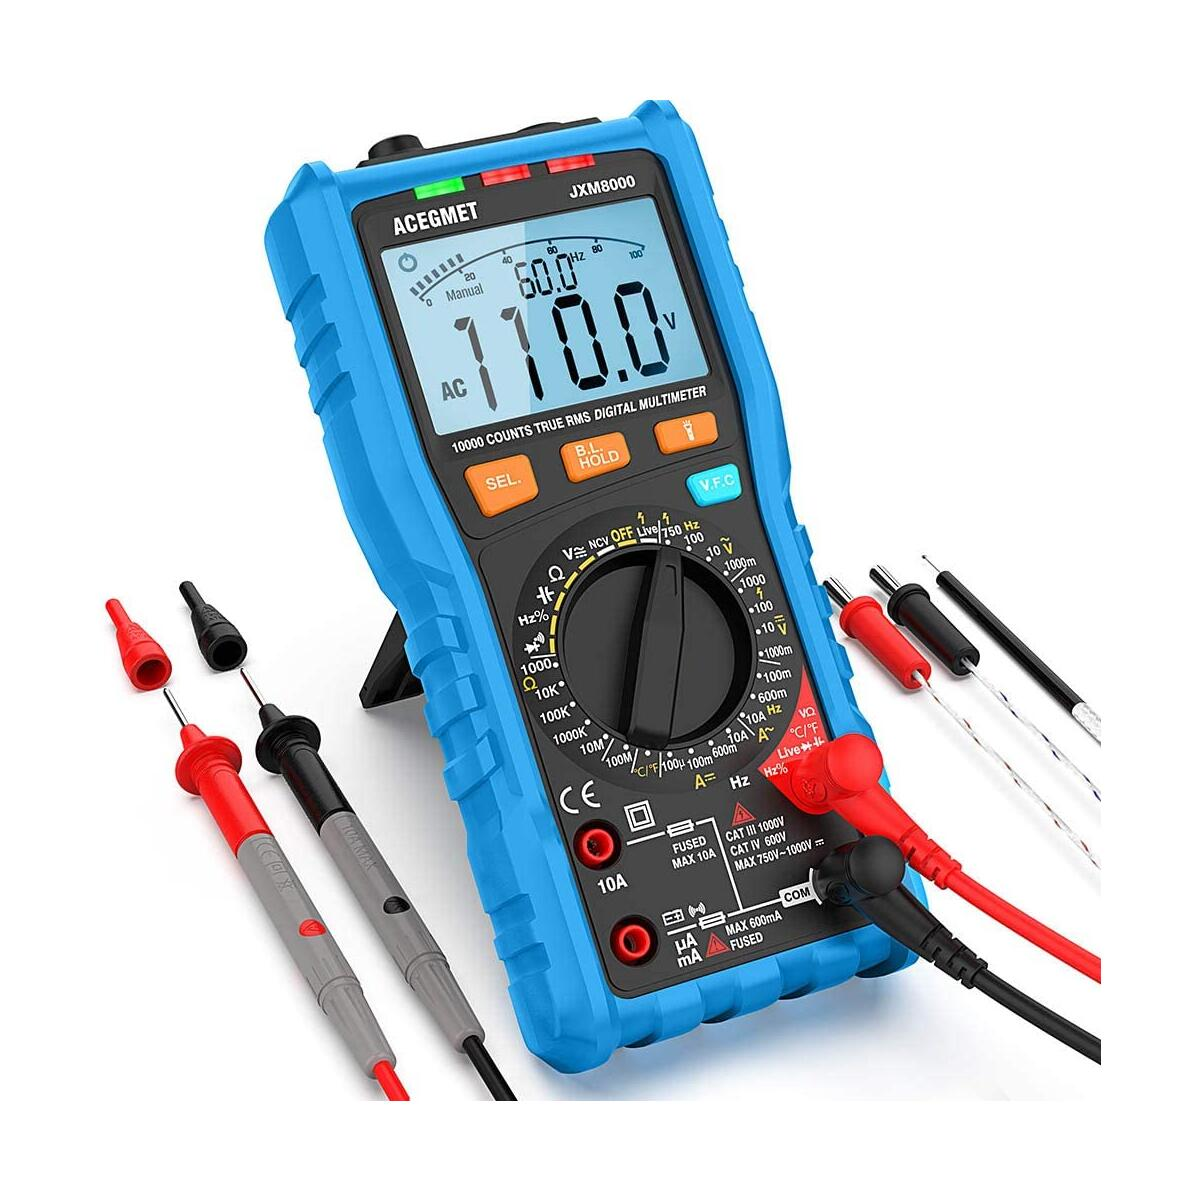 Digital Multimeter, ACEGMET TRMS Auto/Manual Ranging Multimeter Tester AC/DC Current, Voltage Meter Measures Resistance, Frequency, Temperature, 10000 Counts Volt Meter NCV with LCD Backlit Display